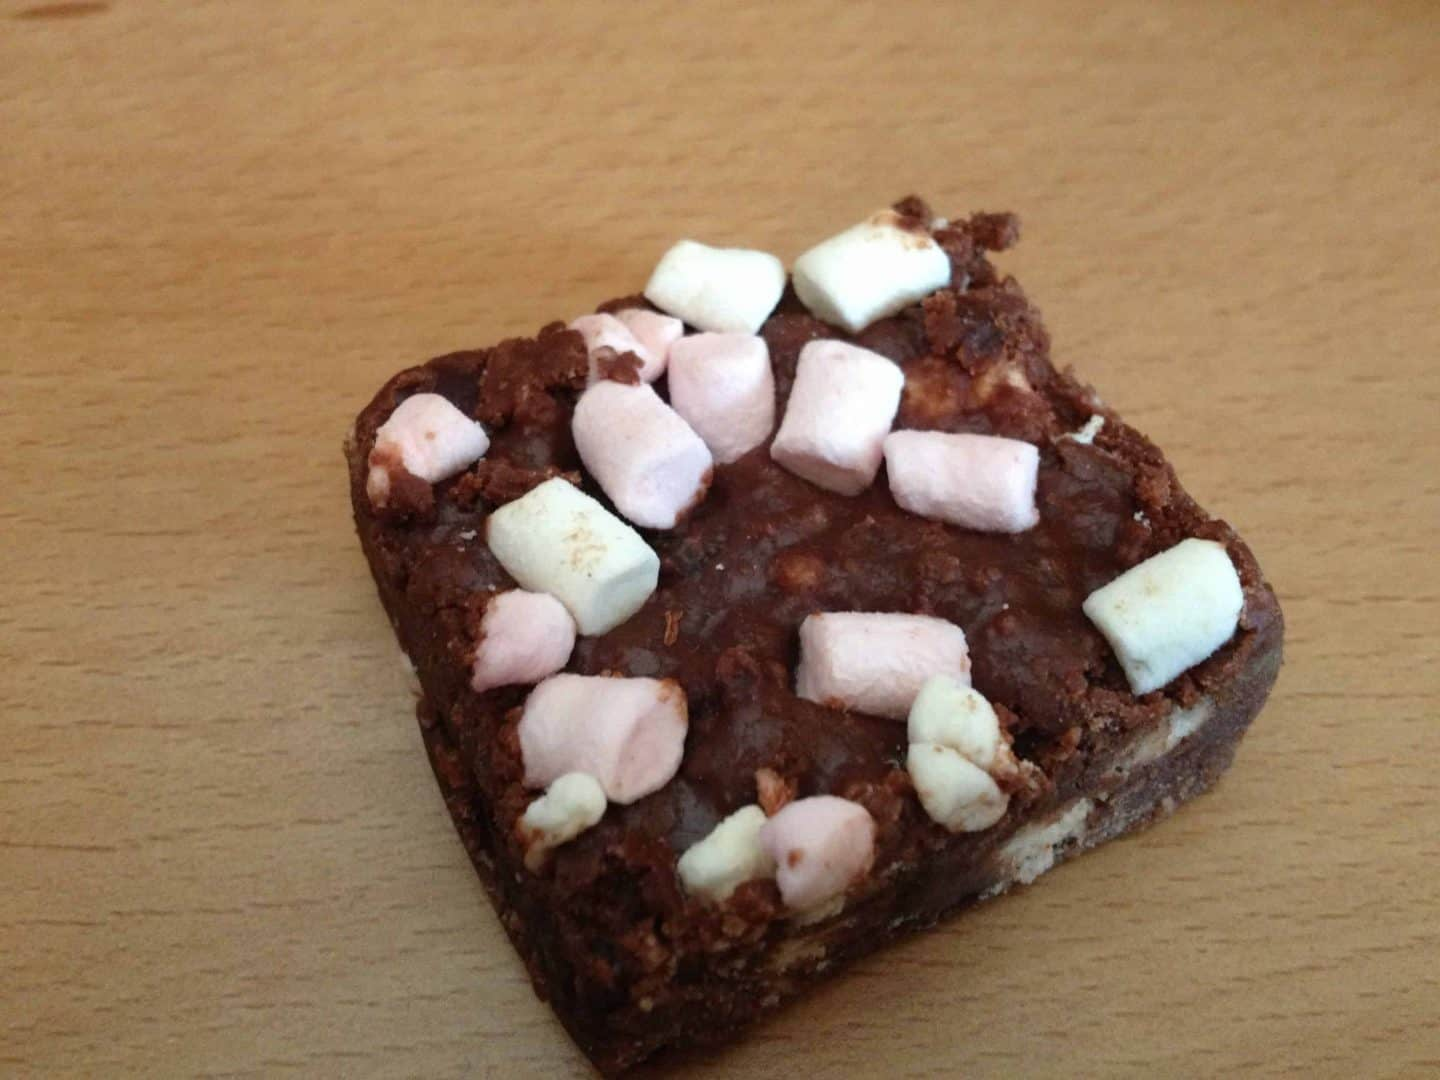 Gluten free rocky roads from Asda's new free from range